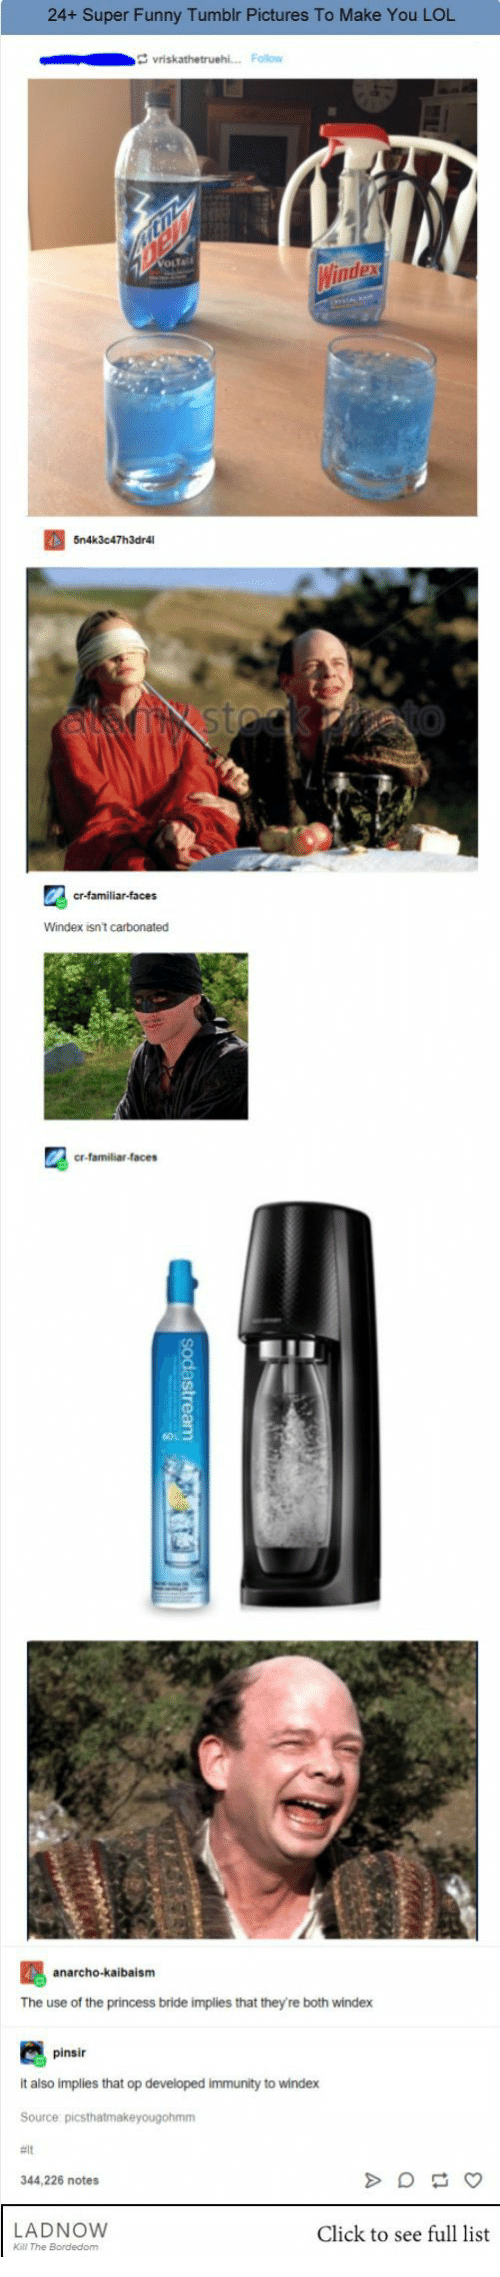 Anarcho: 24+ Super Funny Tumblr Pictures To Make You LOL  Windex isnt carbonated  cr-familiar-faces  anarcho-kaibaism  The use of the princess bride implies that they're both windex  pinsir  it also implies that op developed immunity to windex  344,226 notes  LADNOWw  Click to see full list  Kall The Bordedom